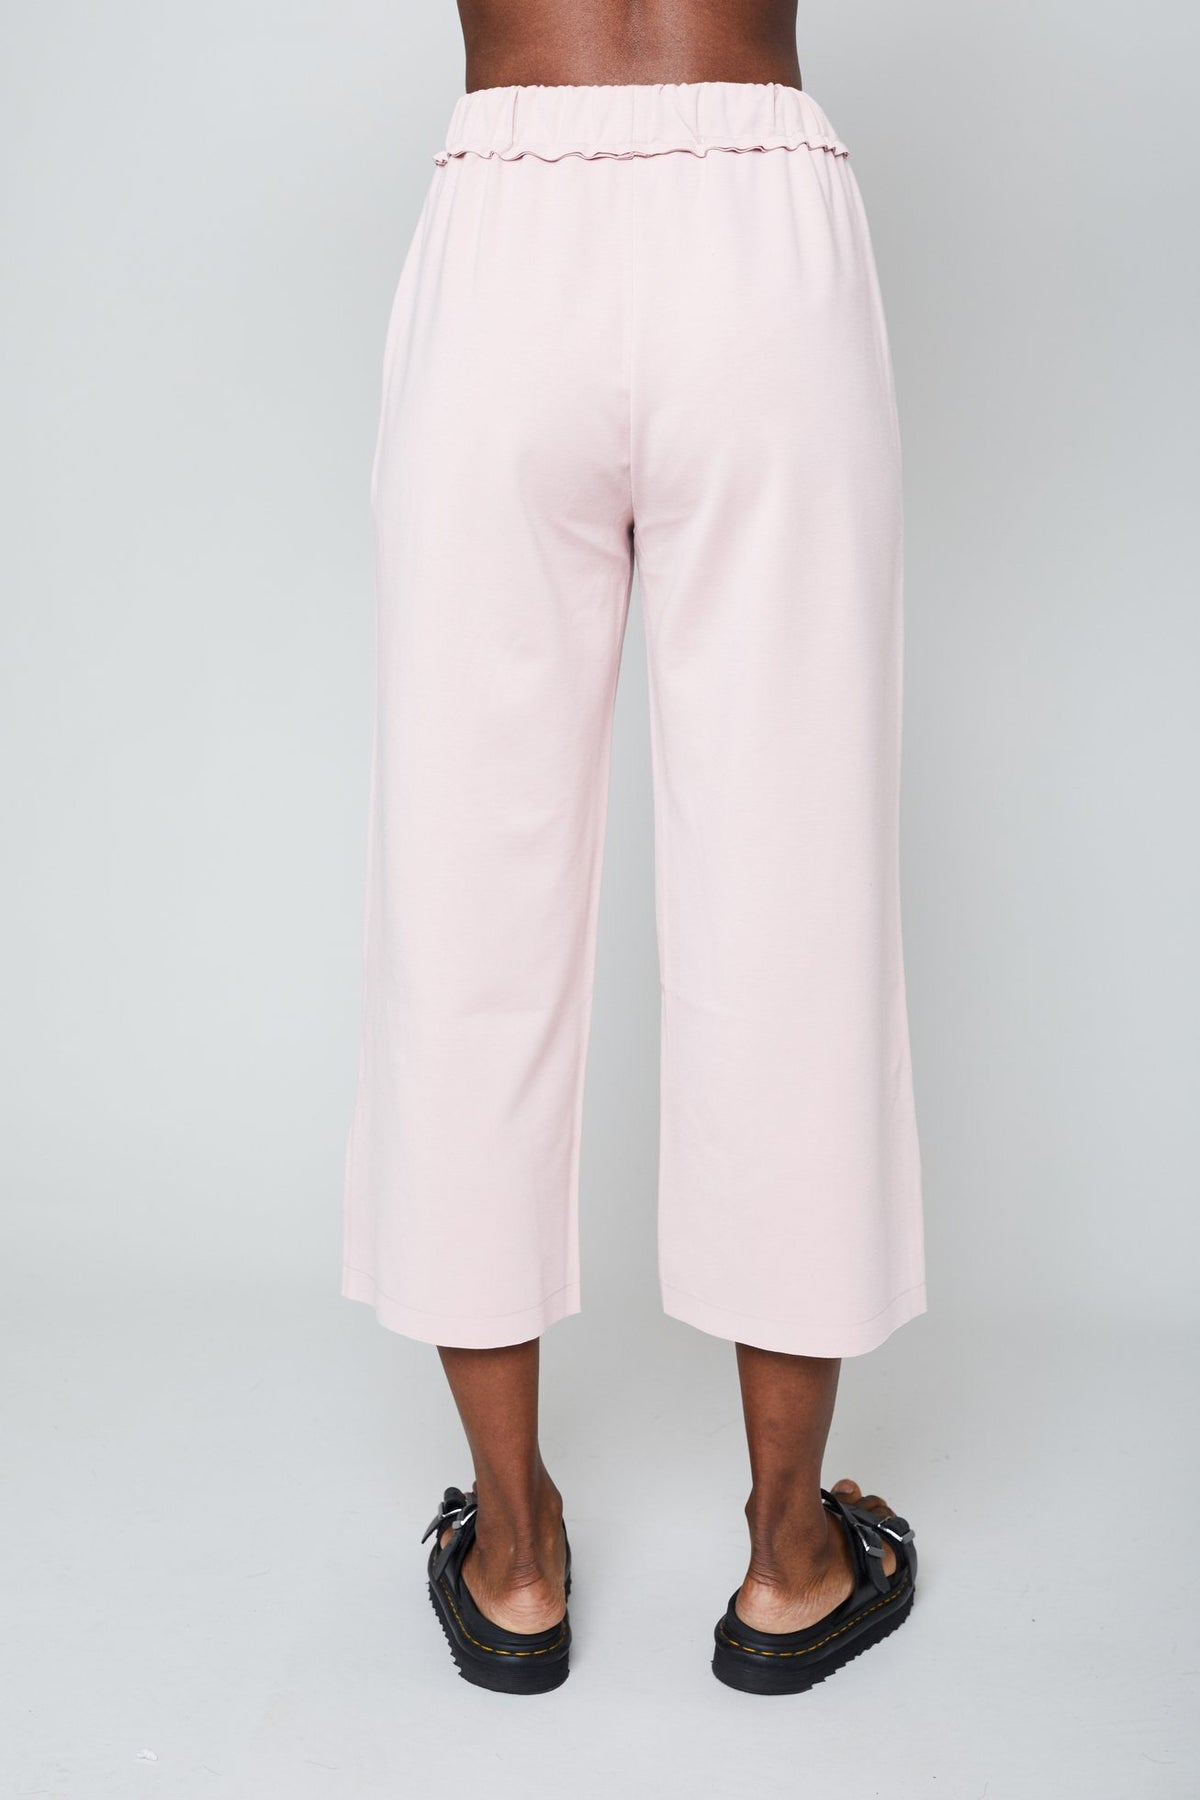 THE ANEETHA PANT